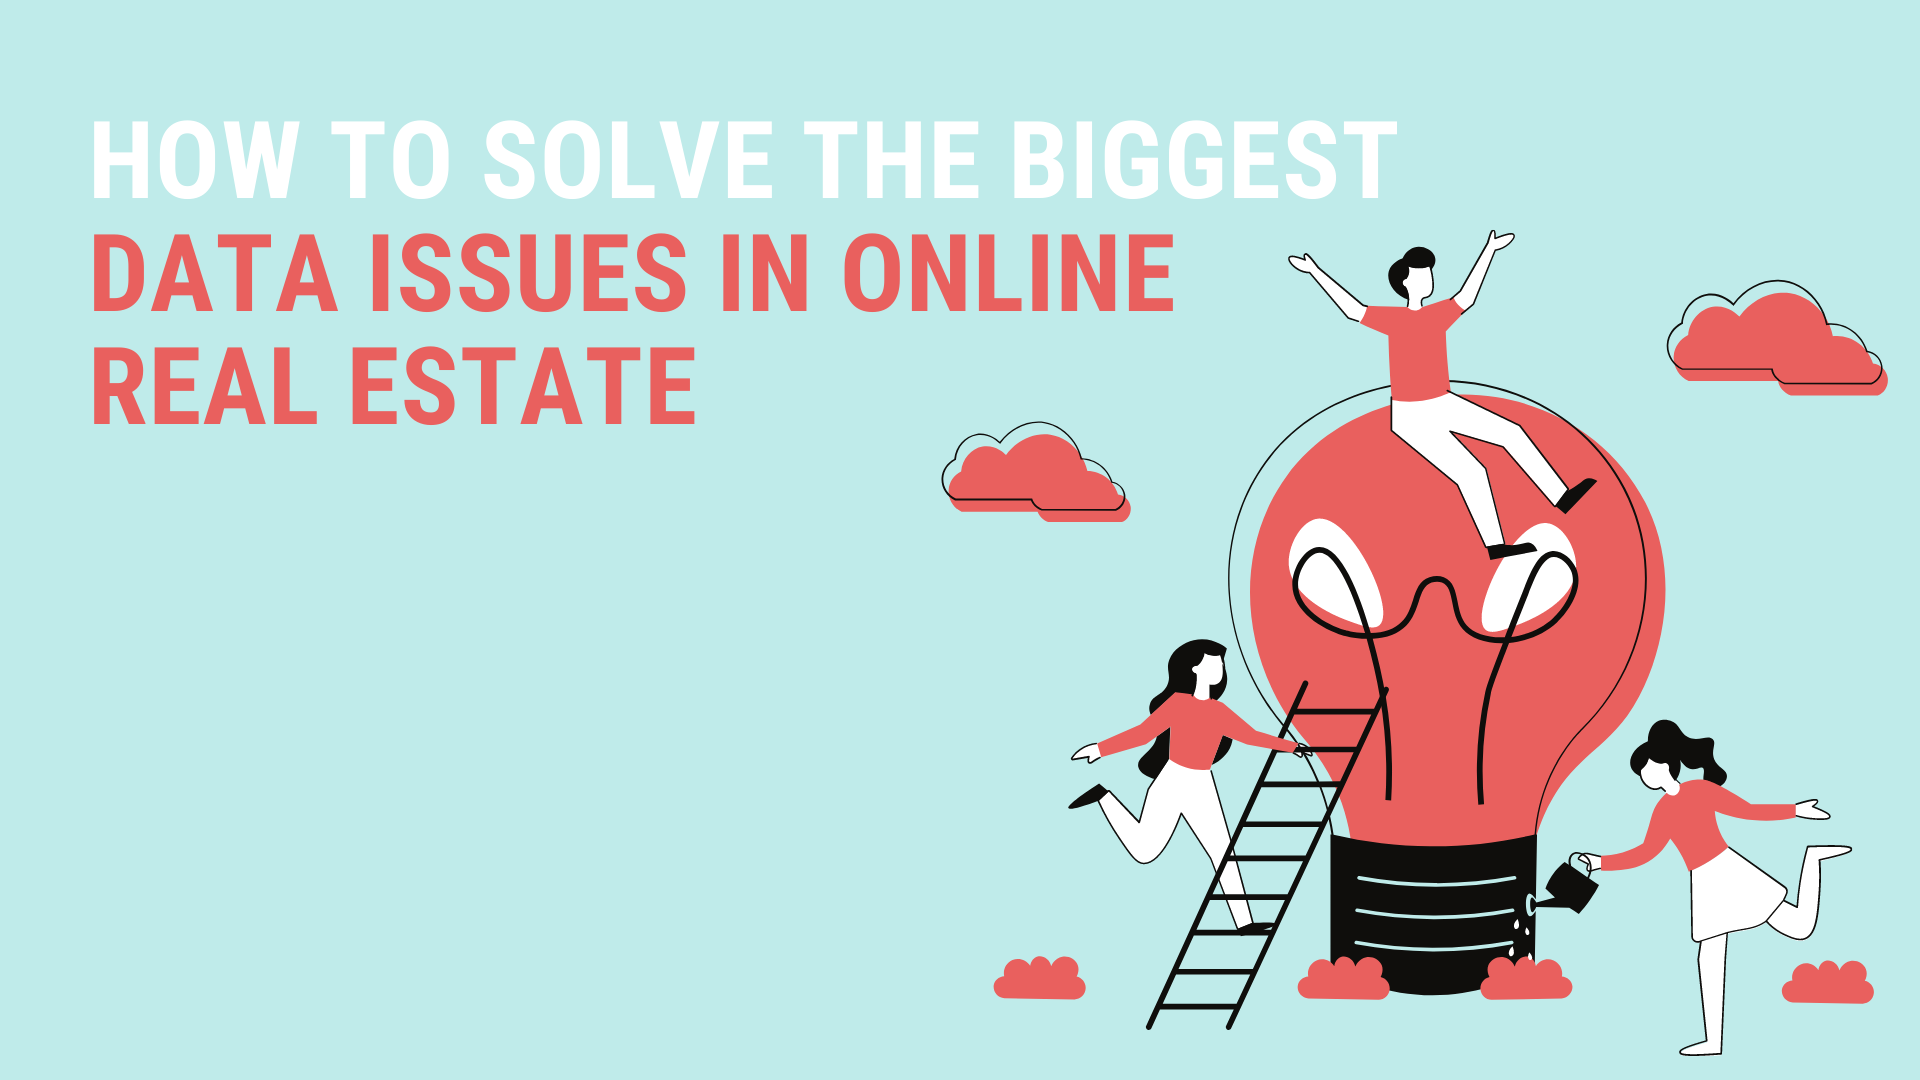 Solving data issues real estate